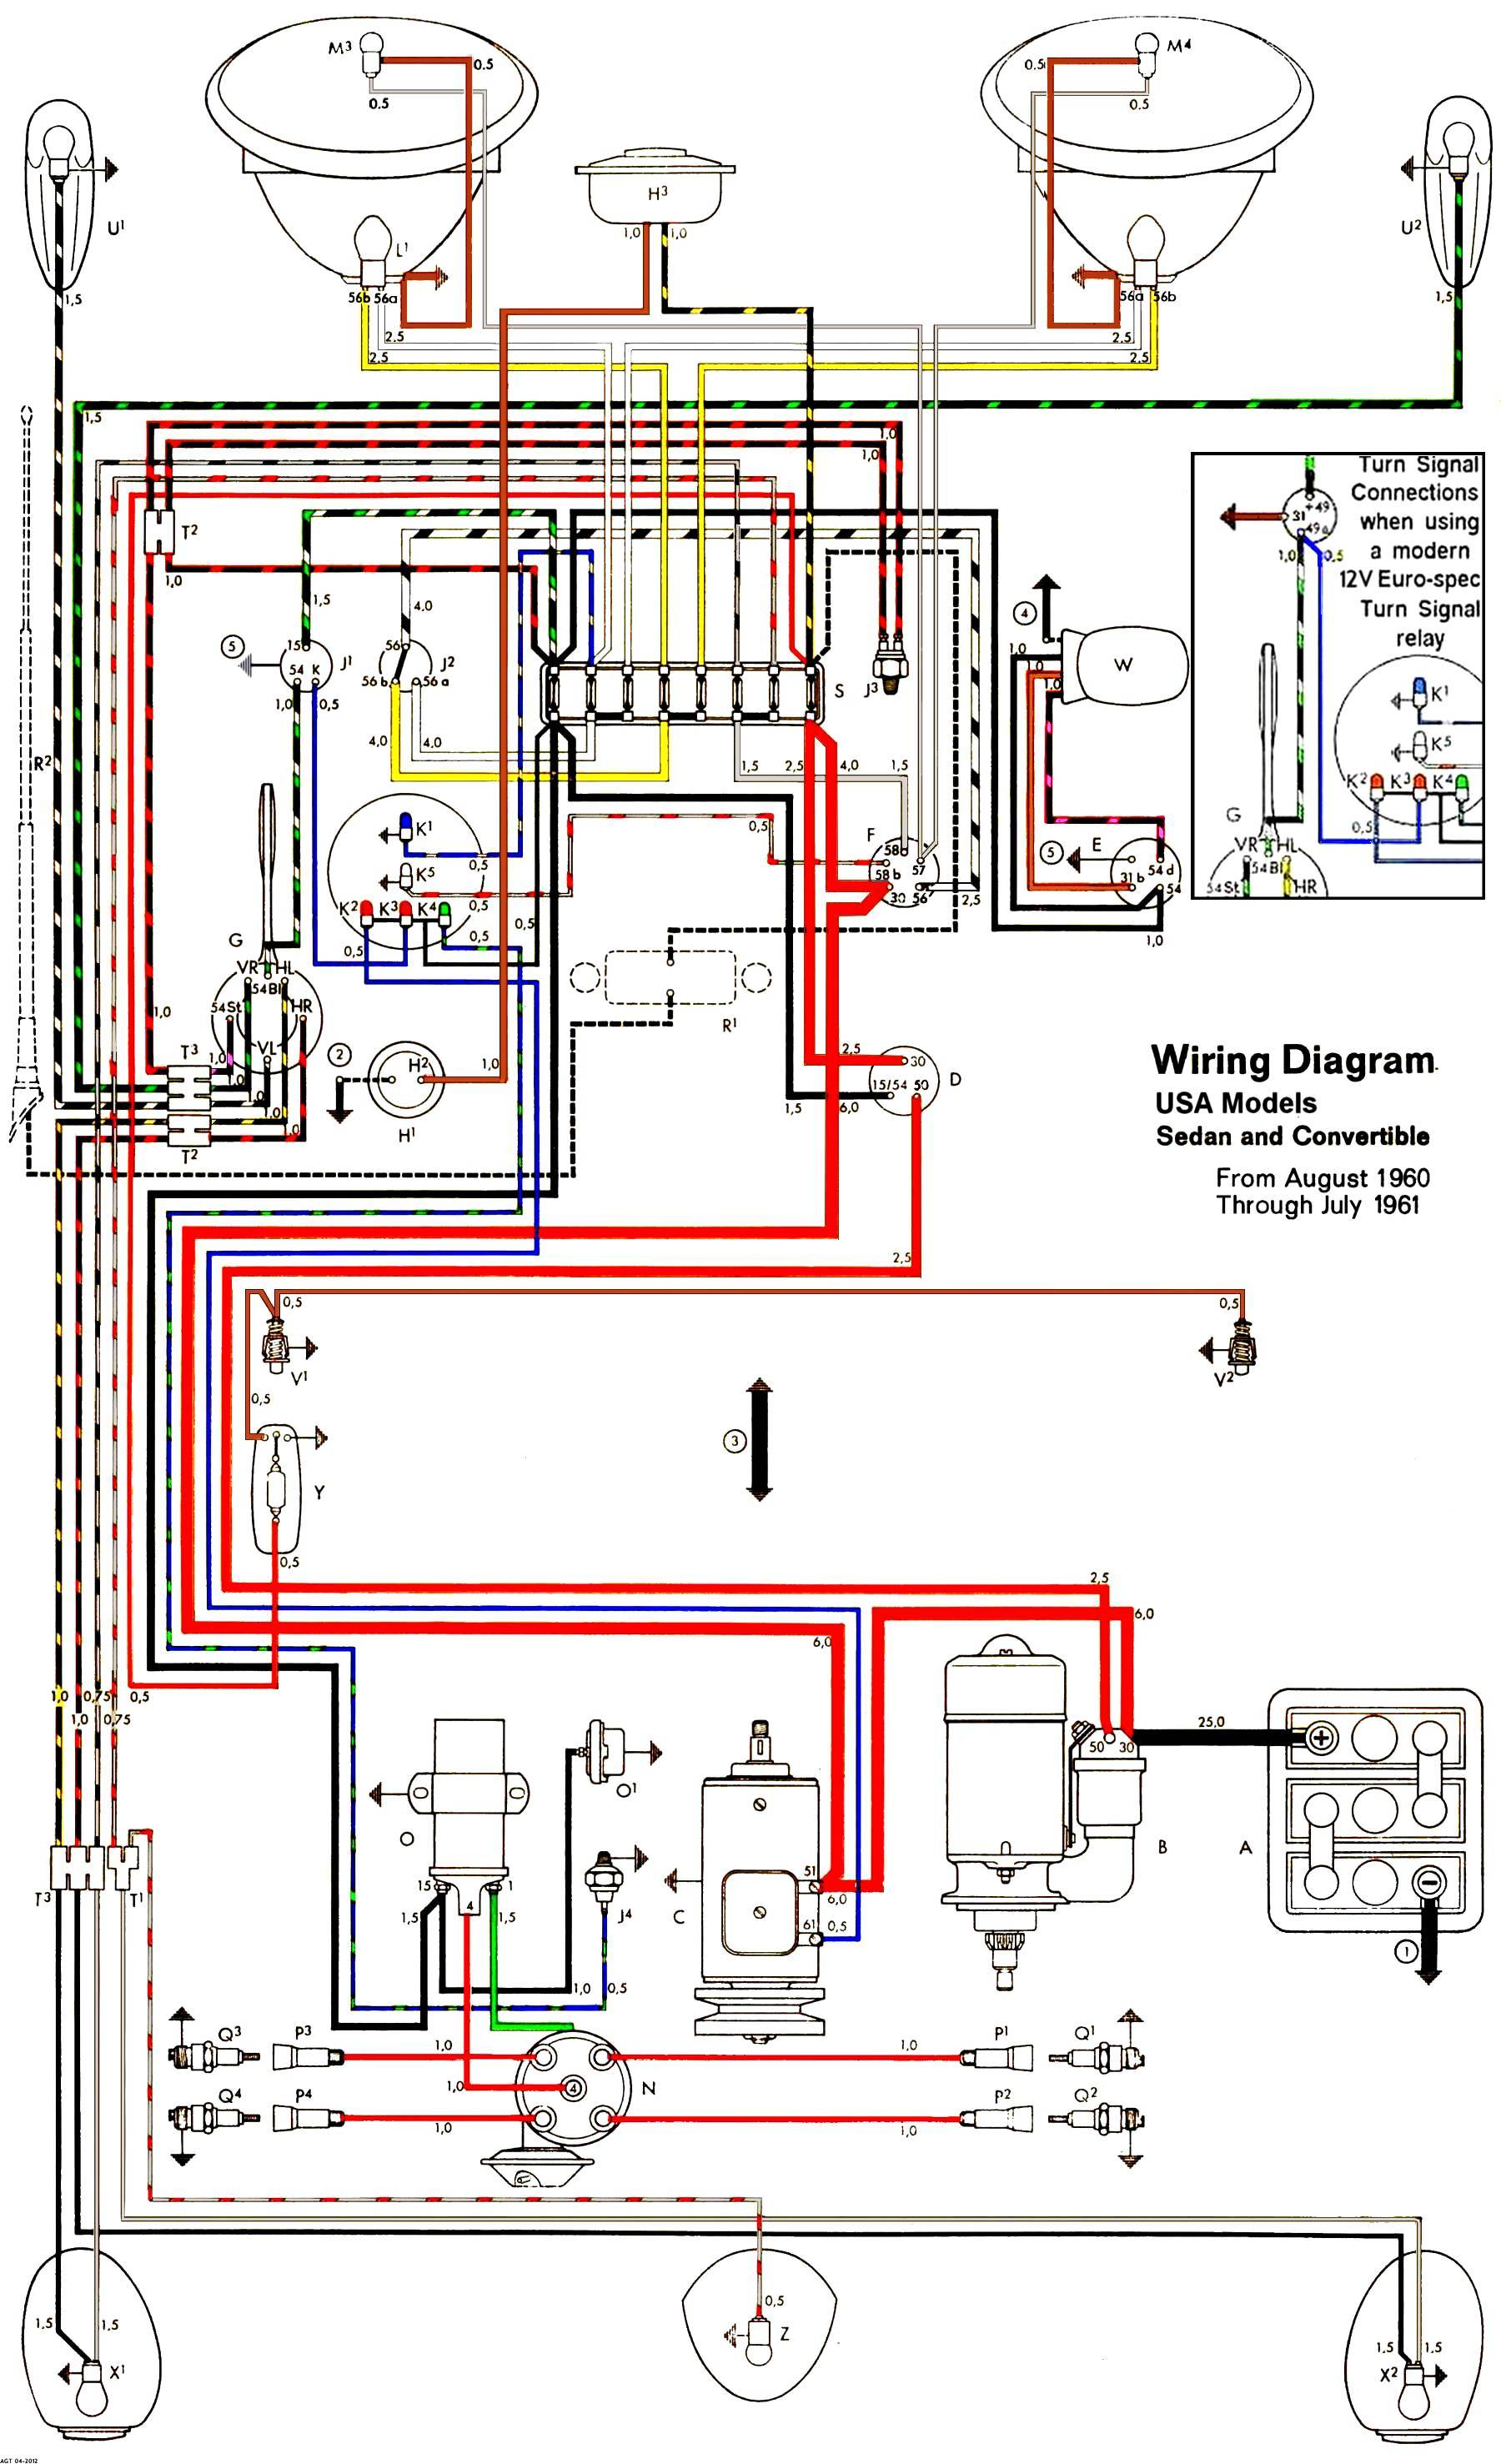 2000 Beetle Wiring Diagram Alternator Opinions About For A Utilitech 553456 Bathroom Fan Thesamba Com Type 1 Diagrams Rh Vw Relay Volkswagen